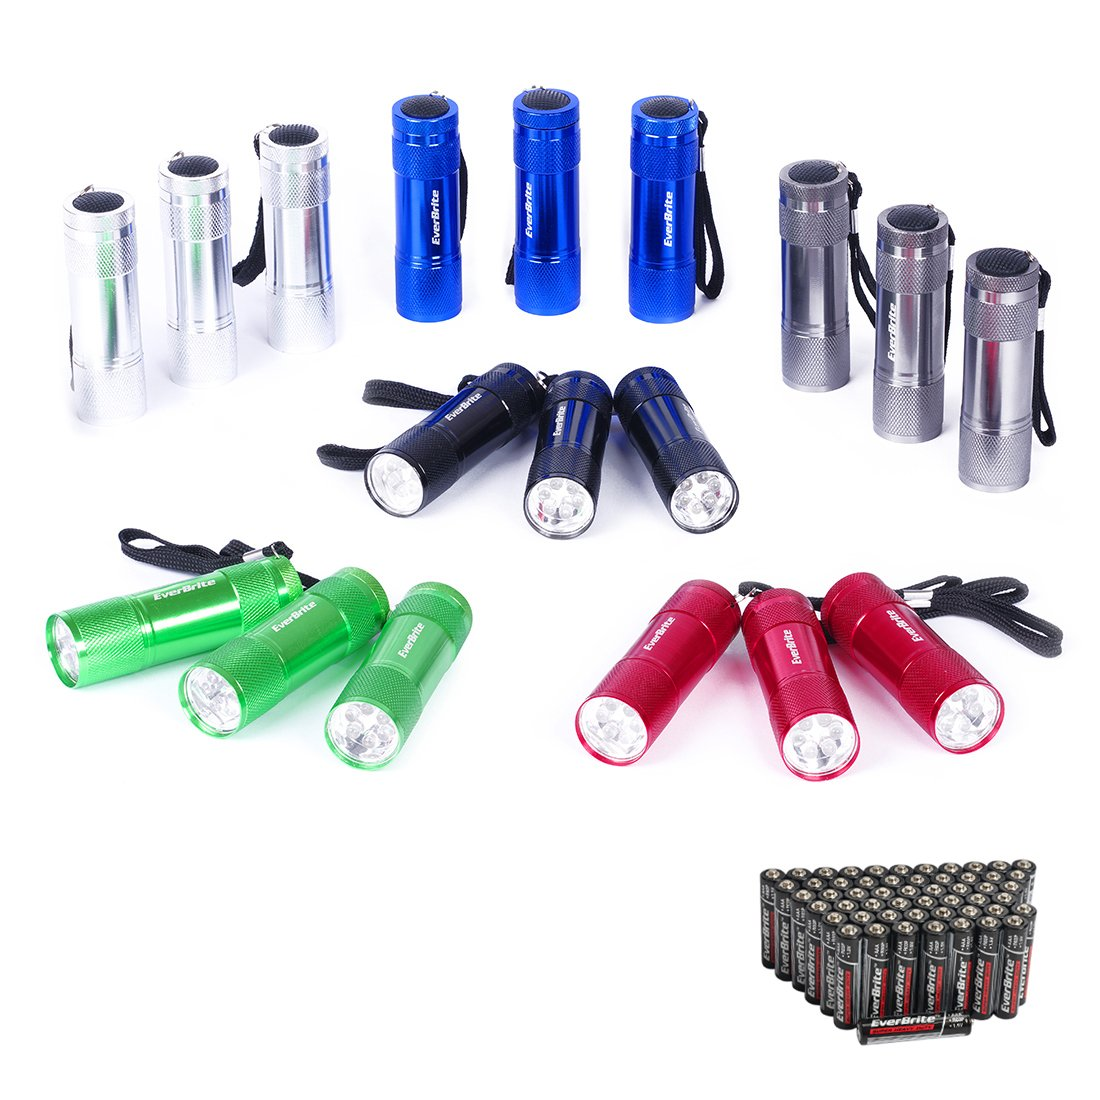 EverBrite Mini LED Flashlight 18-pack Set - Portable Flashlights Ideal for Camping, Night Reading, Cycling, BBQ, Party, Festivals, Backpacking, Traveling - Mini Torch Includes Lanyard & 54 x AAA Batte